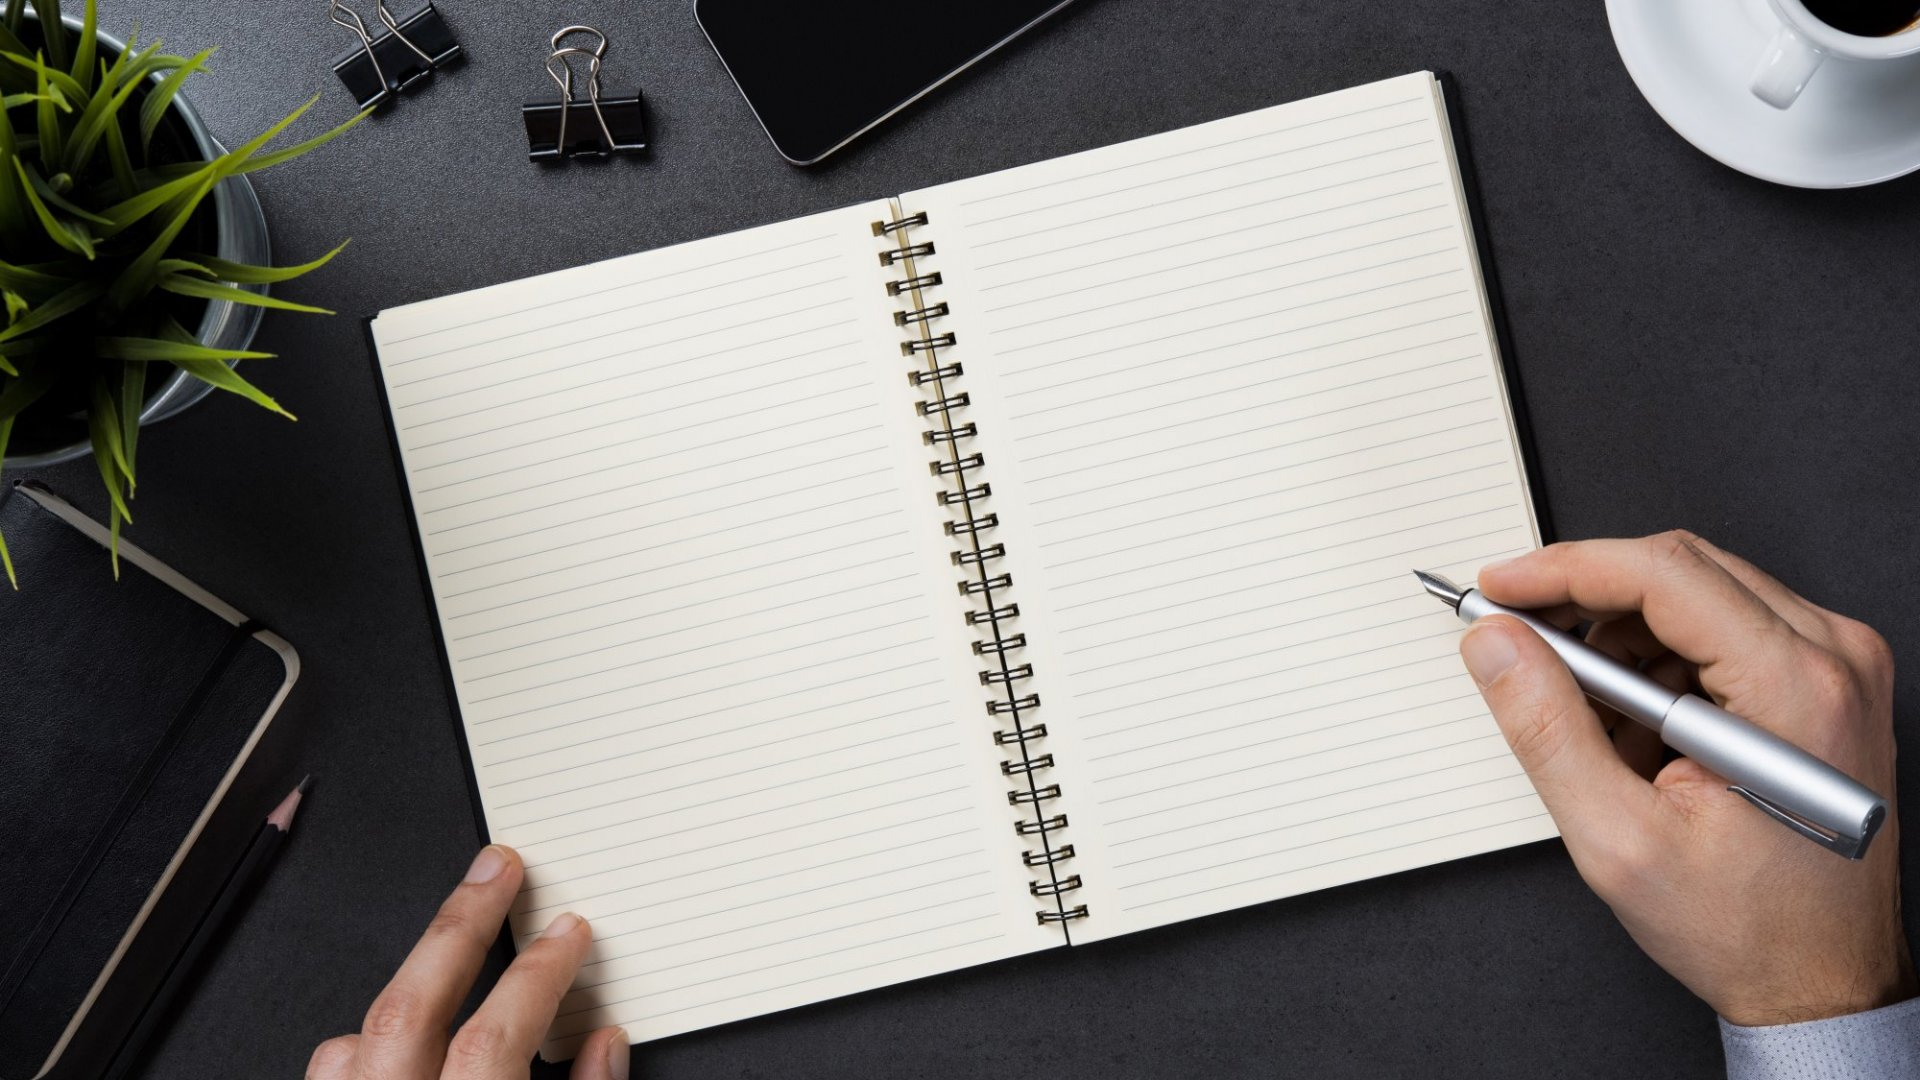 What I Learned Writing 3,000 Words Every Single Day for 4 Years